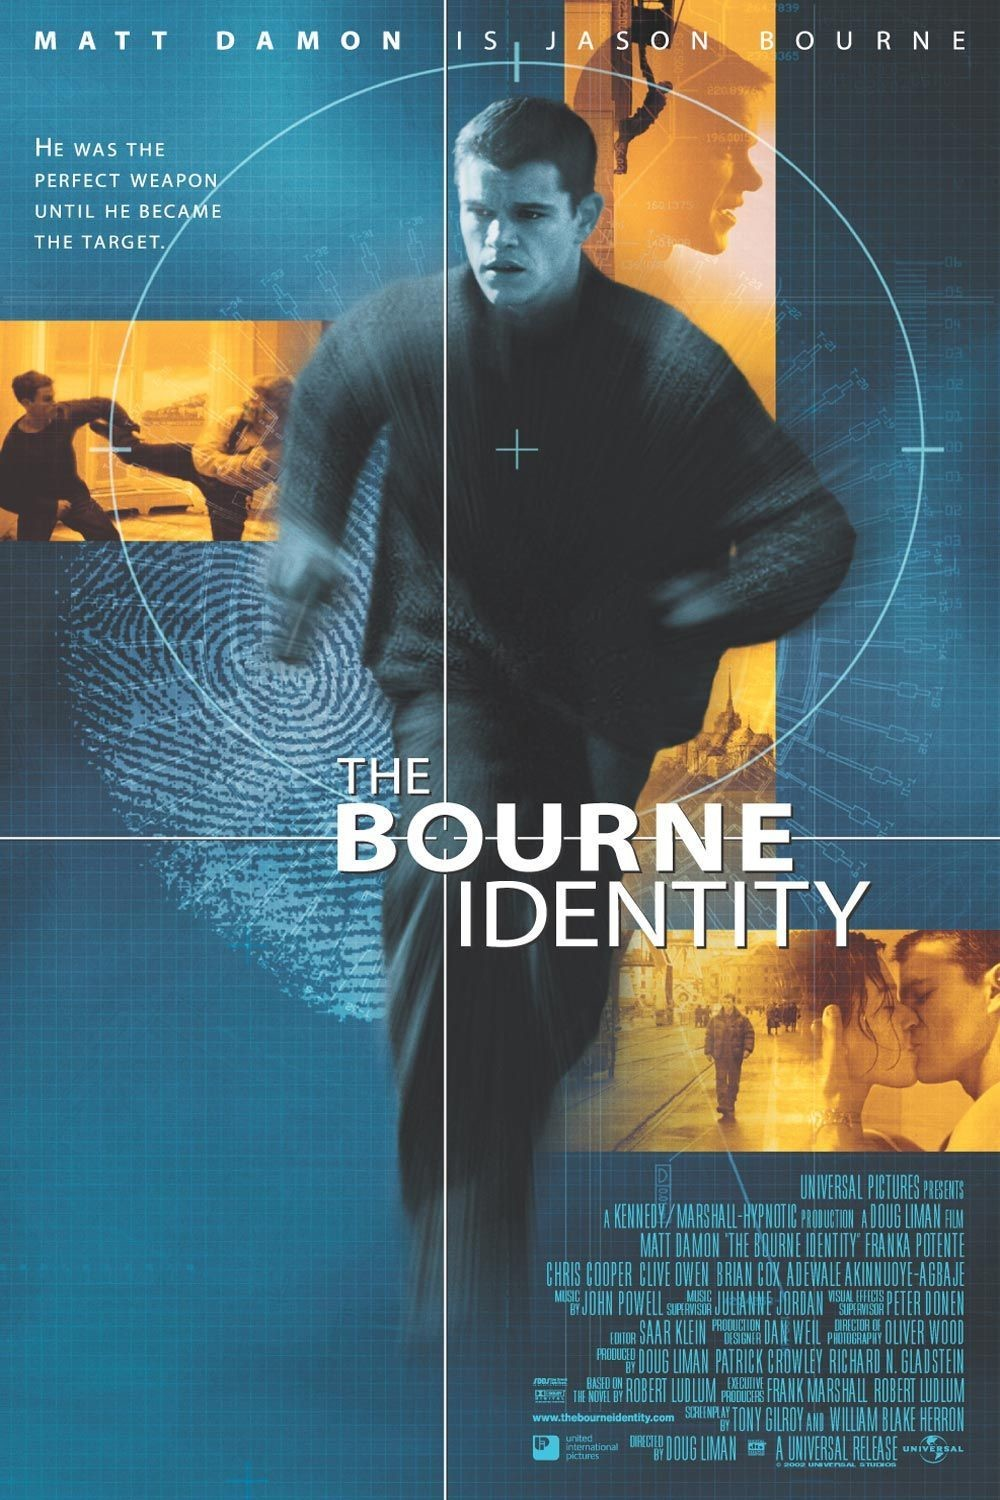 15 Things You Never Knew About 'The Bourne Identity' on Its 15th Anniversary